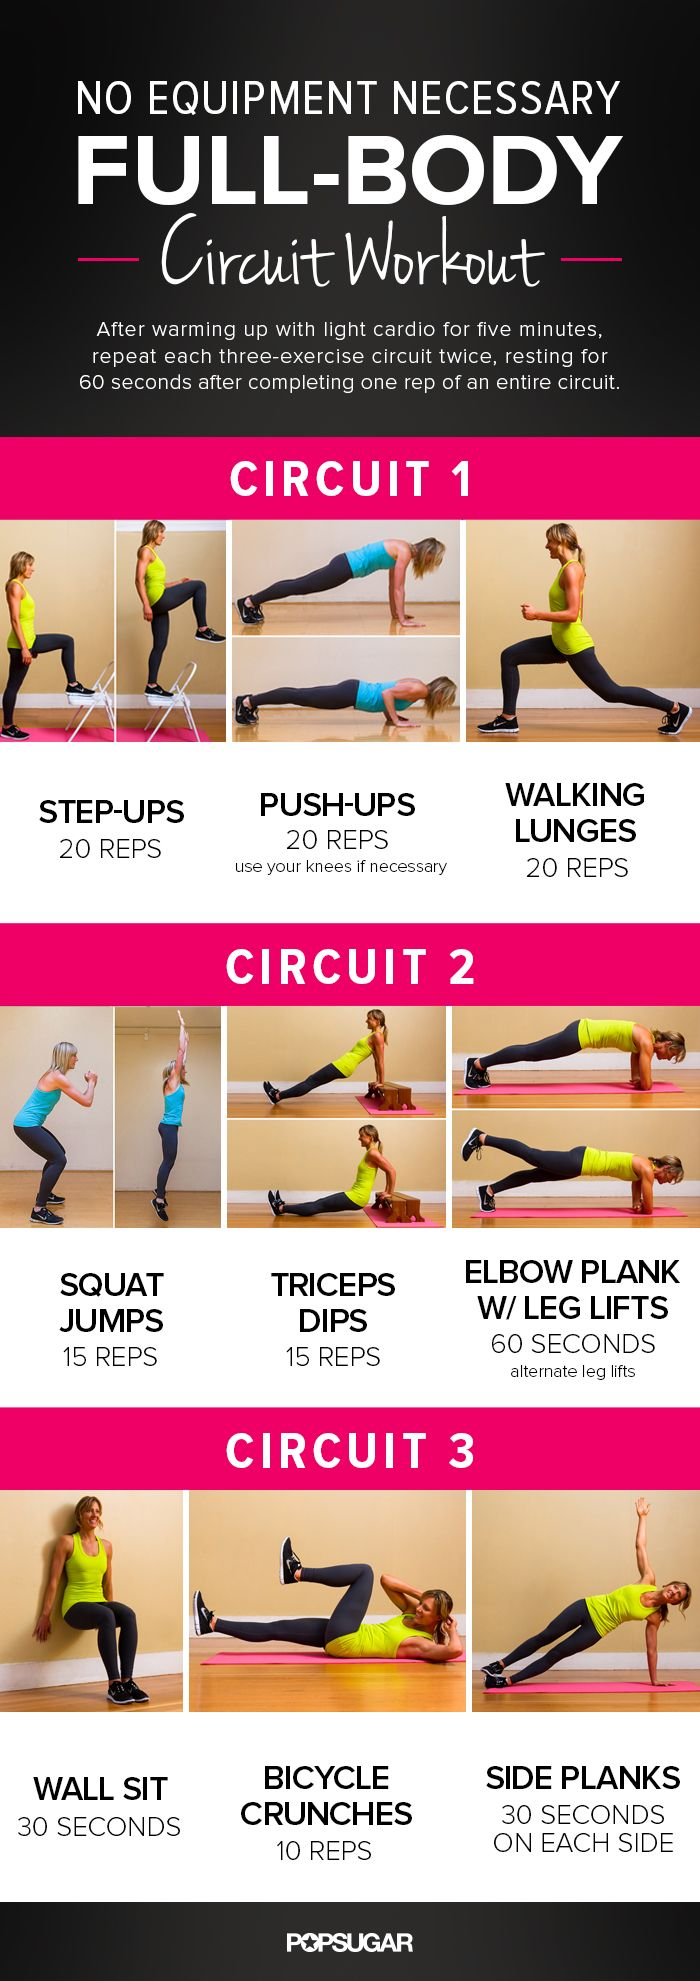 No Equipment Full-Body Circuit Workout